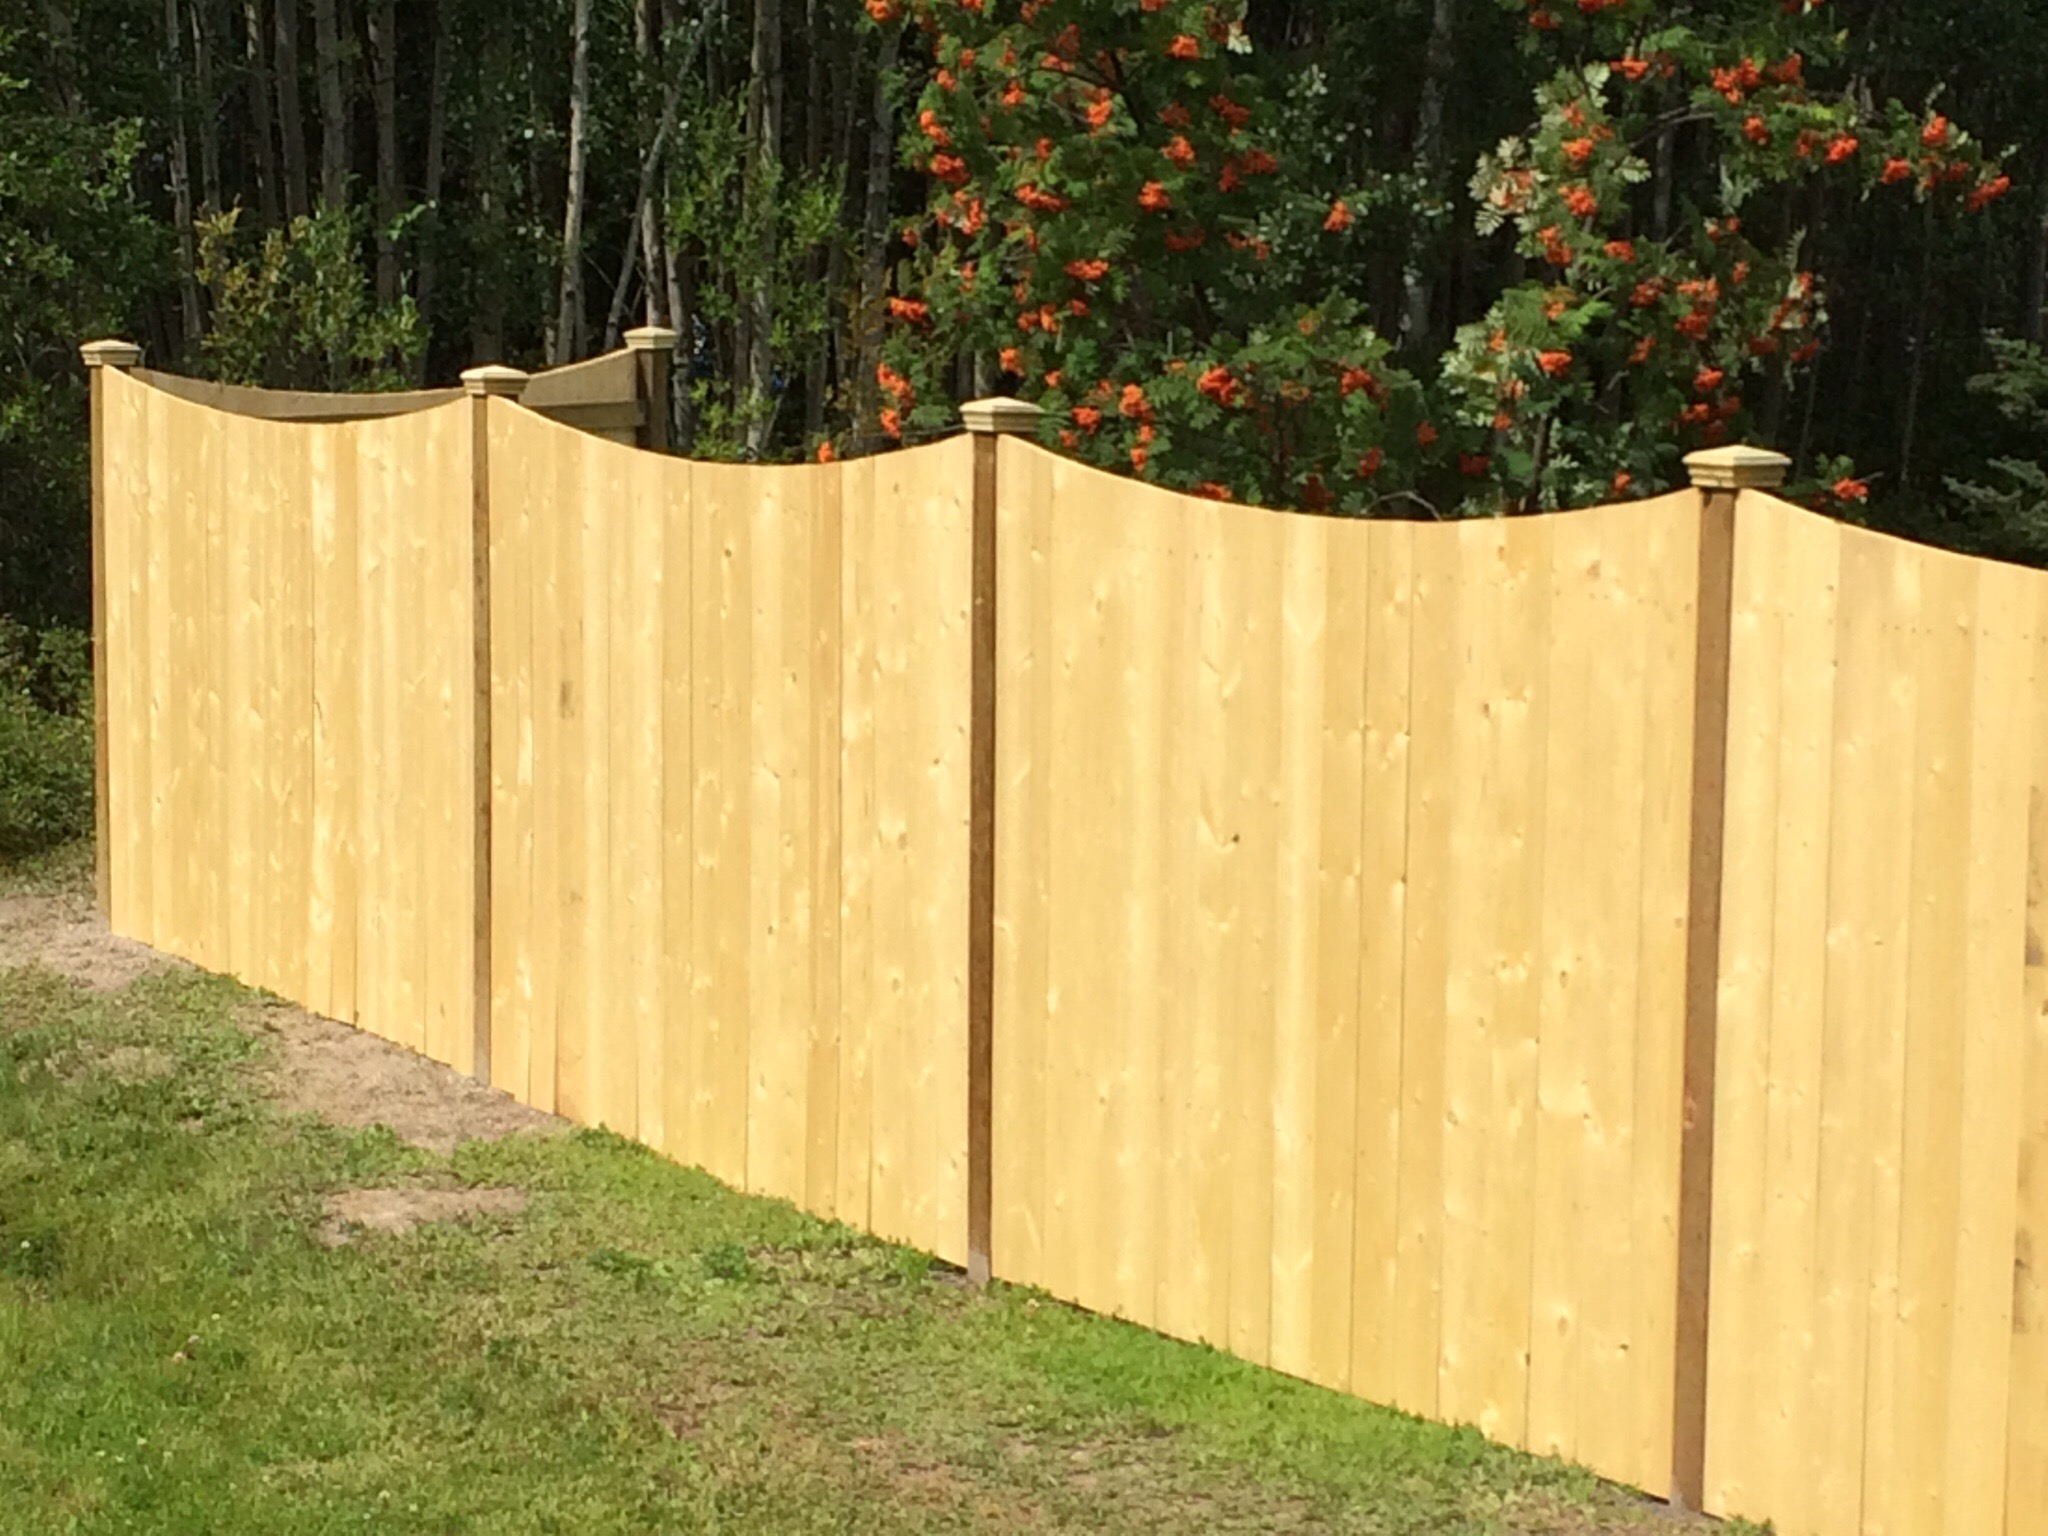 Spruce board privacy fence with pyramid caps